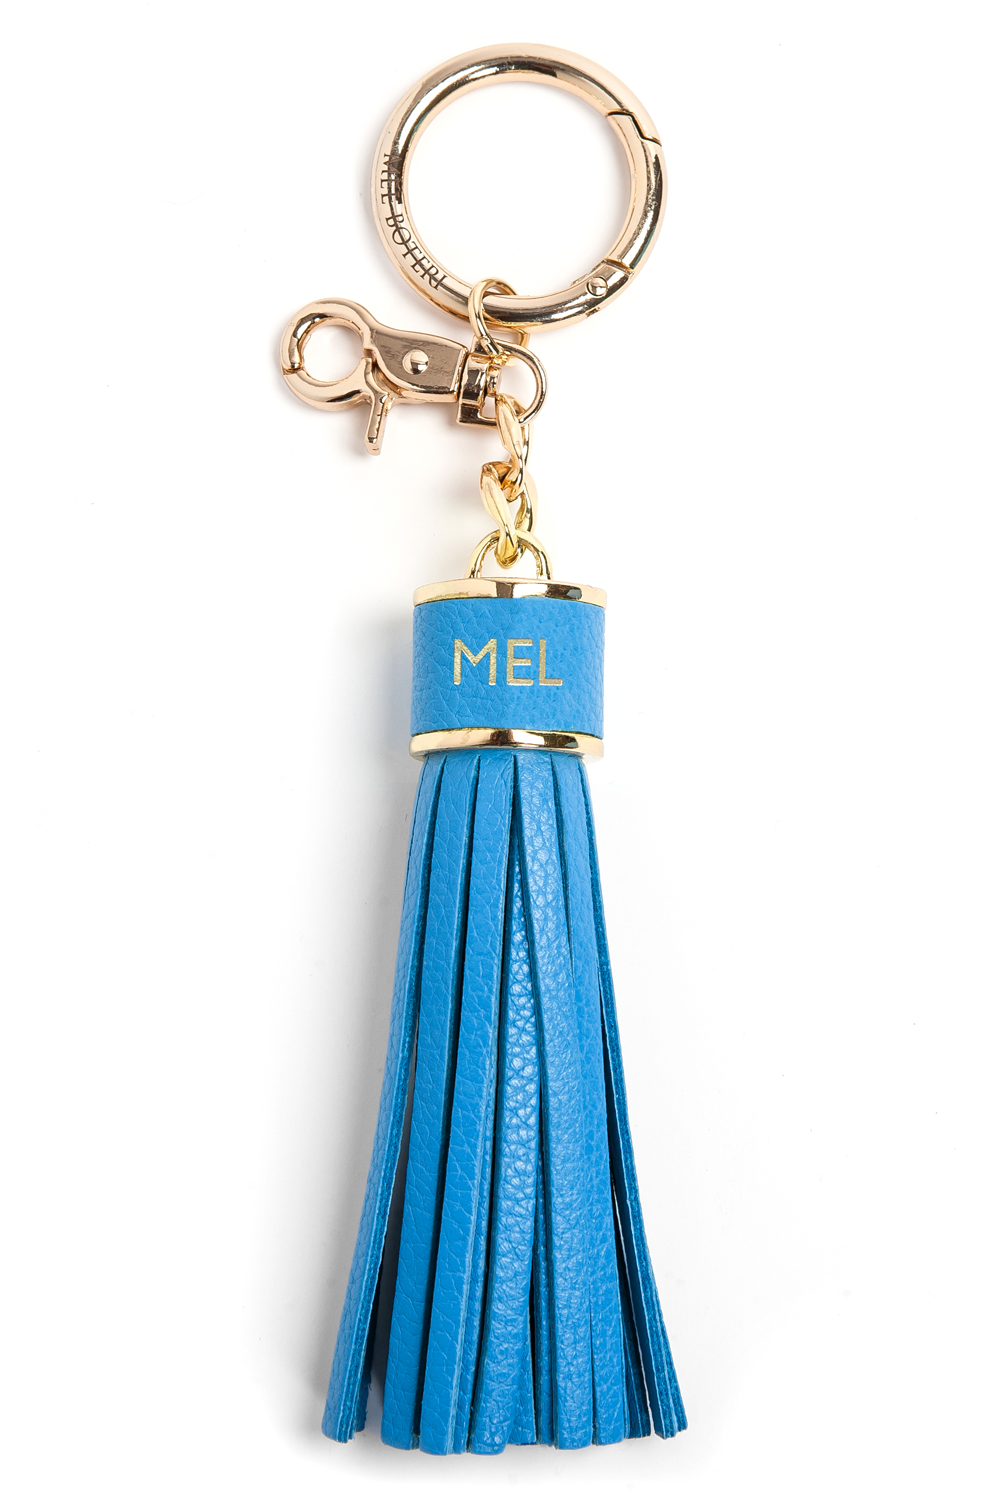 The Mel Boteri Pebbled-Leather Tassel Charm | Aqua Leather With Gold Hardware | Mel Boteri Gift Ideas